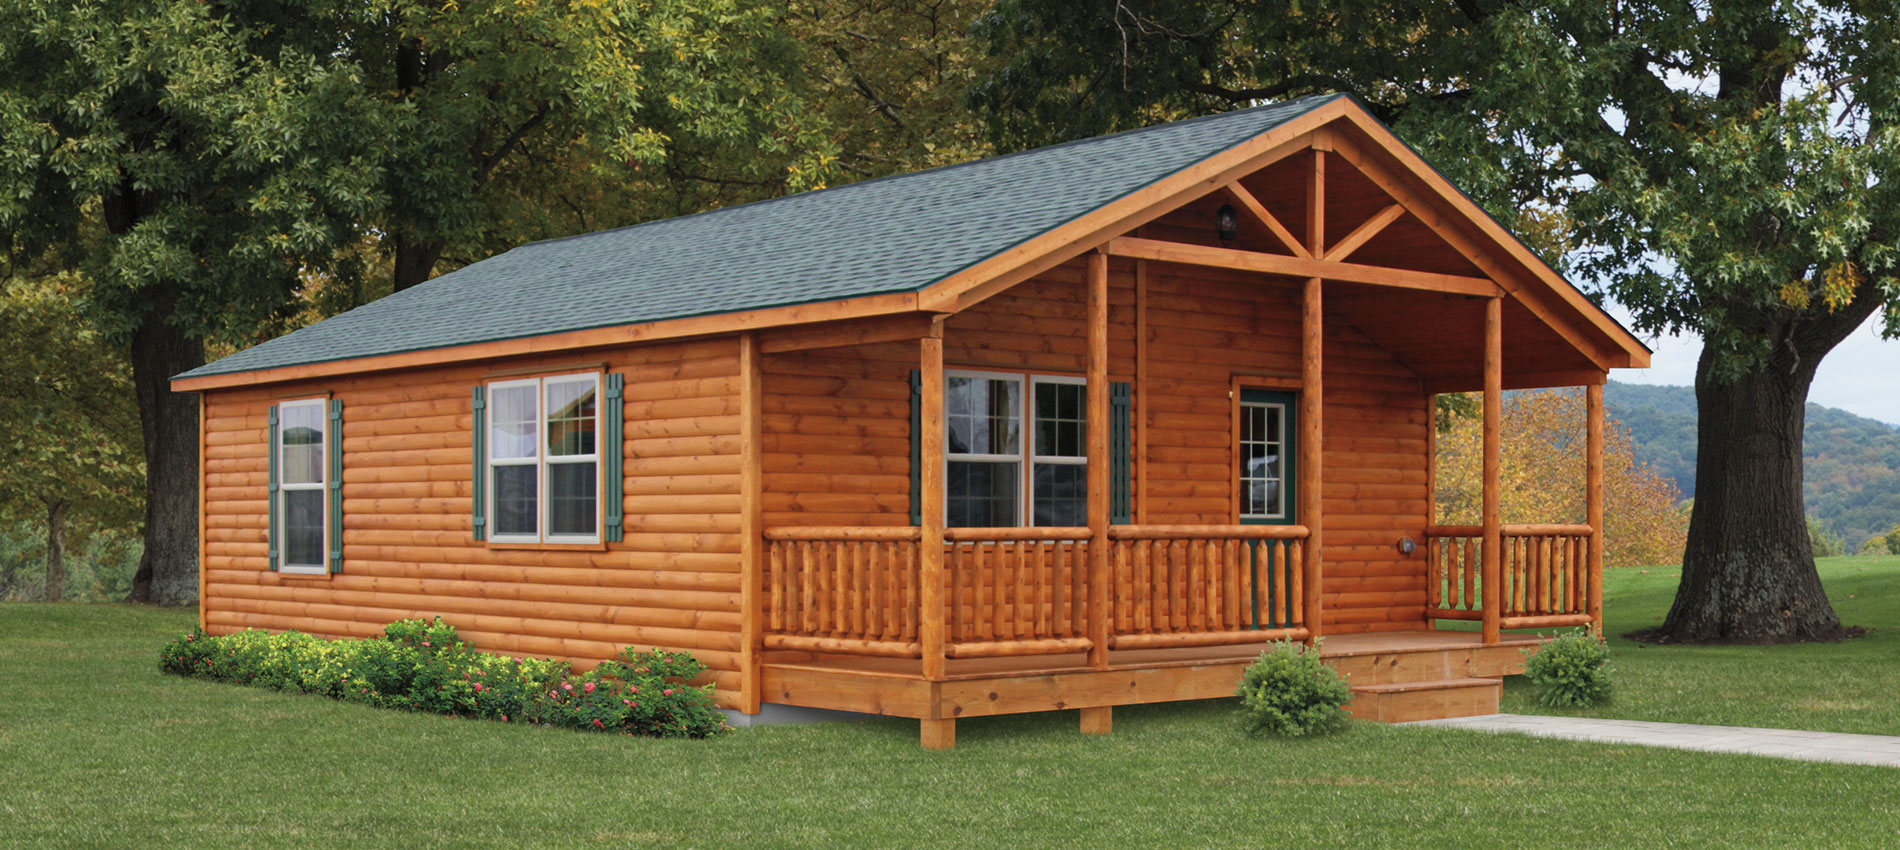 wisconsin hunting recreational property image small cabin for and land large in cabins with indiana greene sale